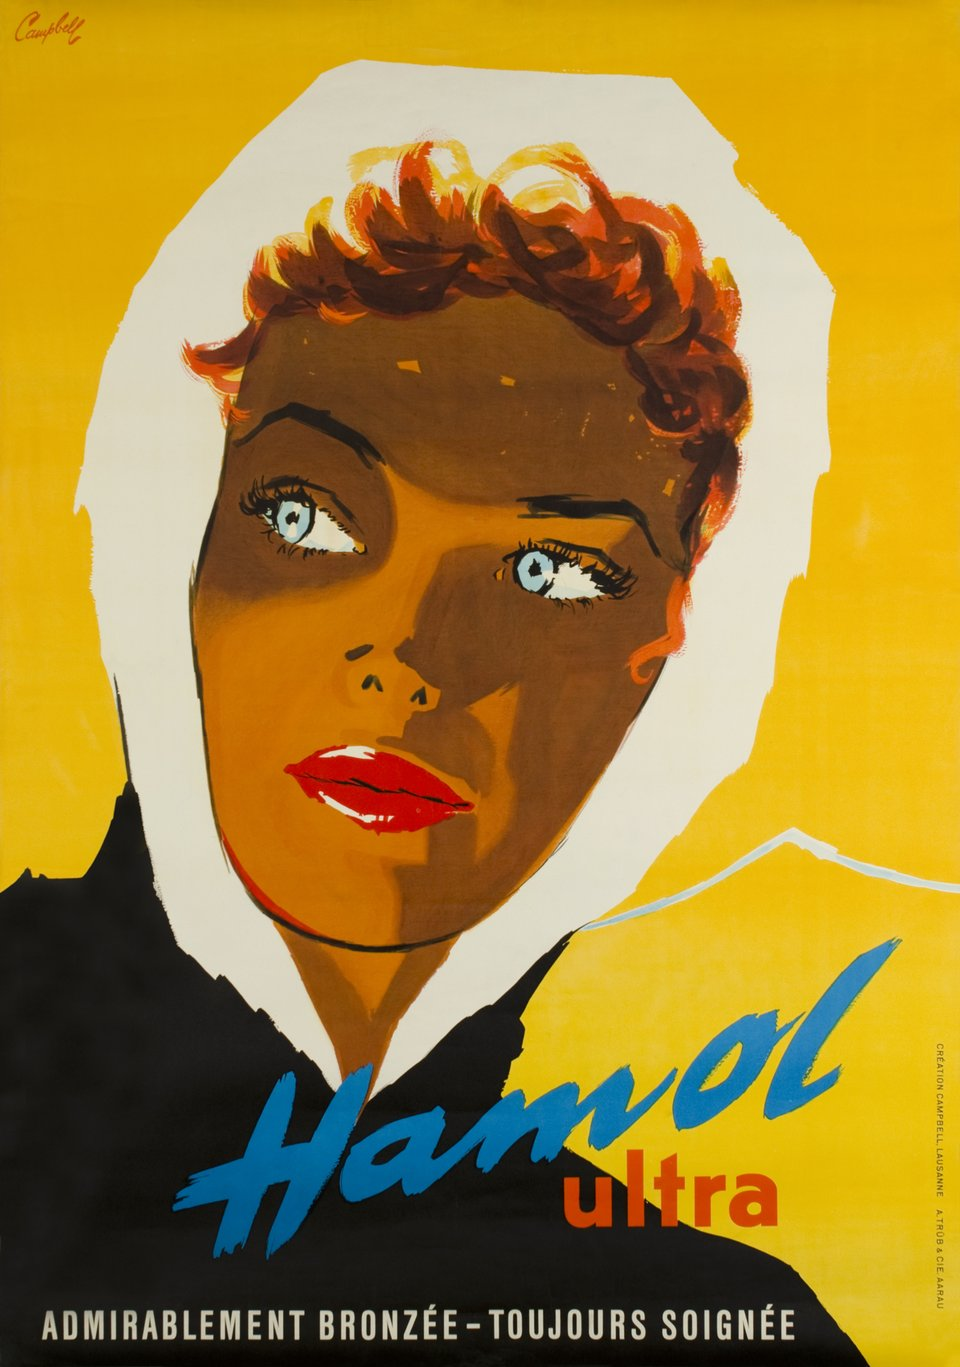 Hamol Ultra admirablement bronzée - toujours soignée – Affiche ancienne – Marcus CAMPBELL – 1955